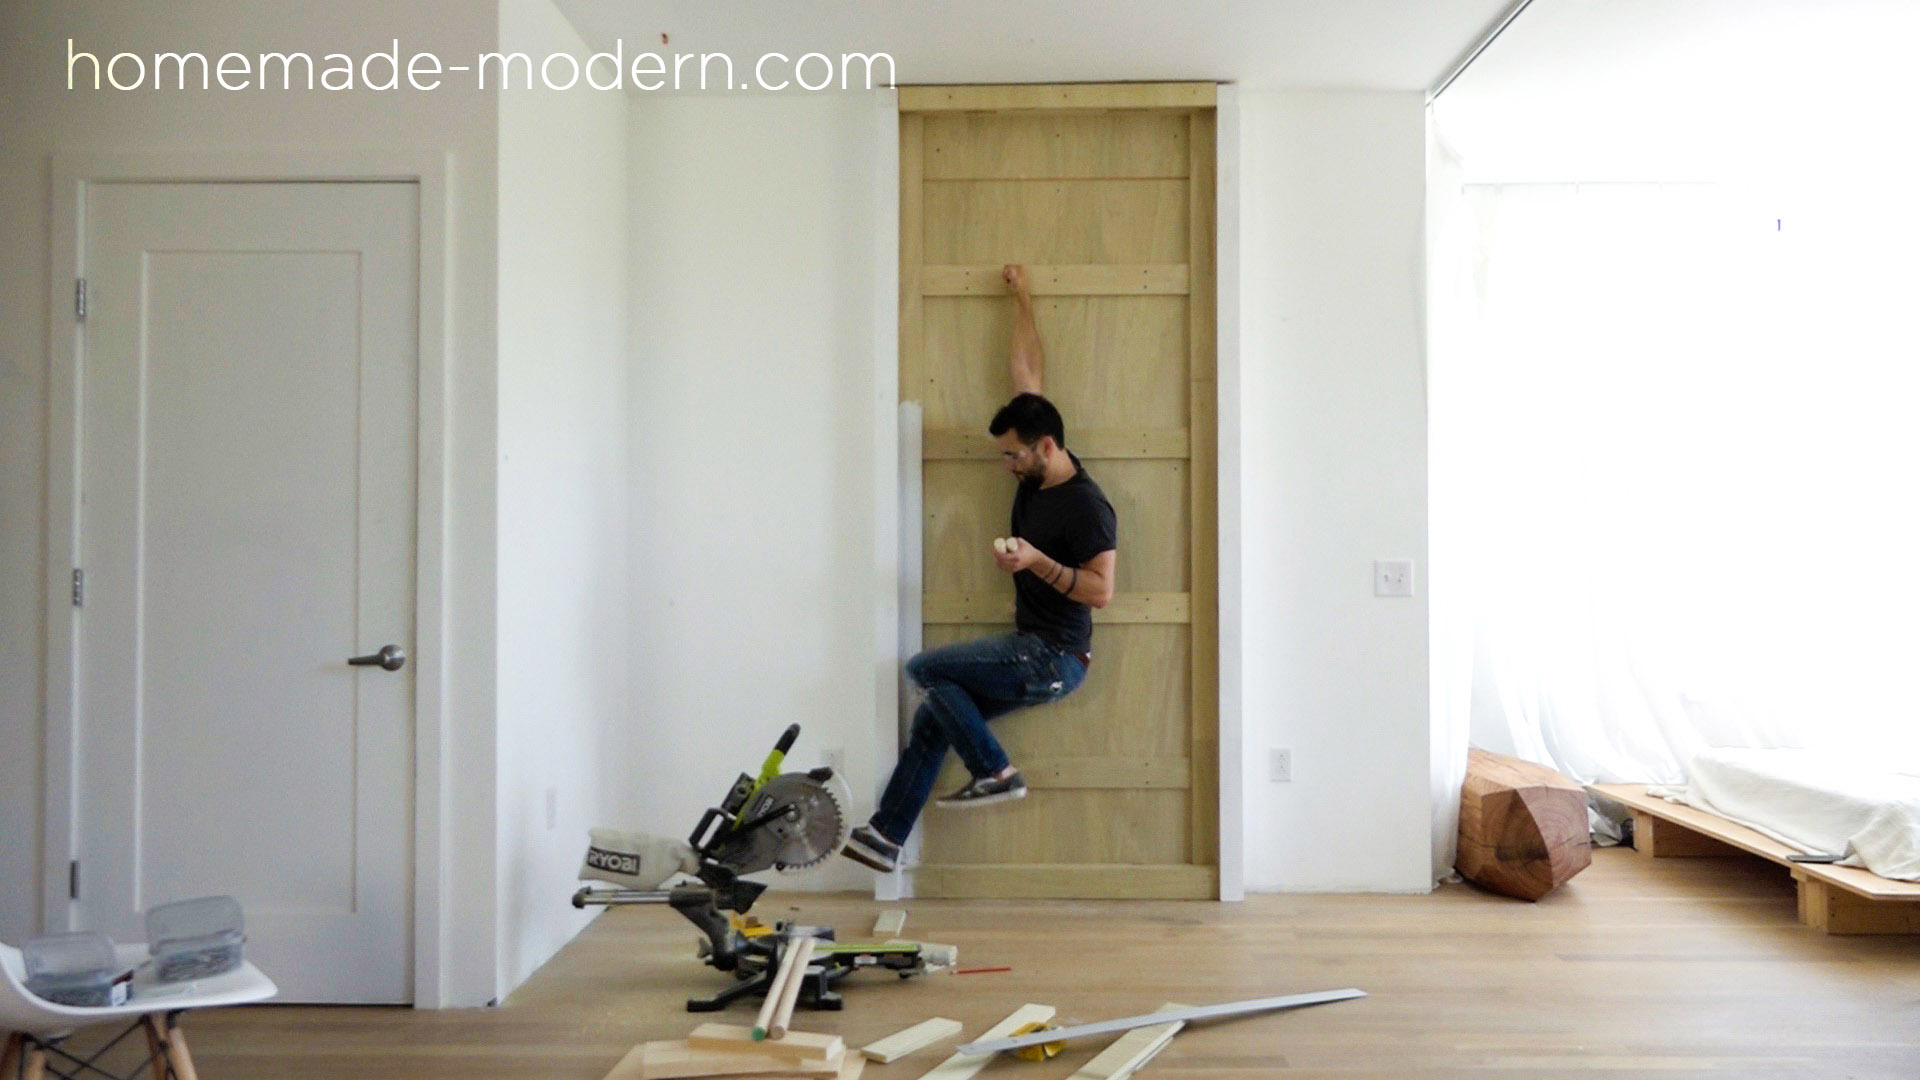 This fold-out gym is perfect for crossfit style exercise routines at home and is made from plywood. Full instructions can be found at HomeMade-Modern.com